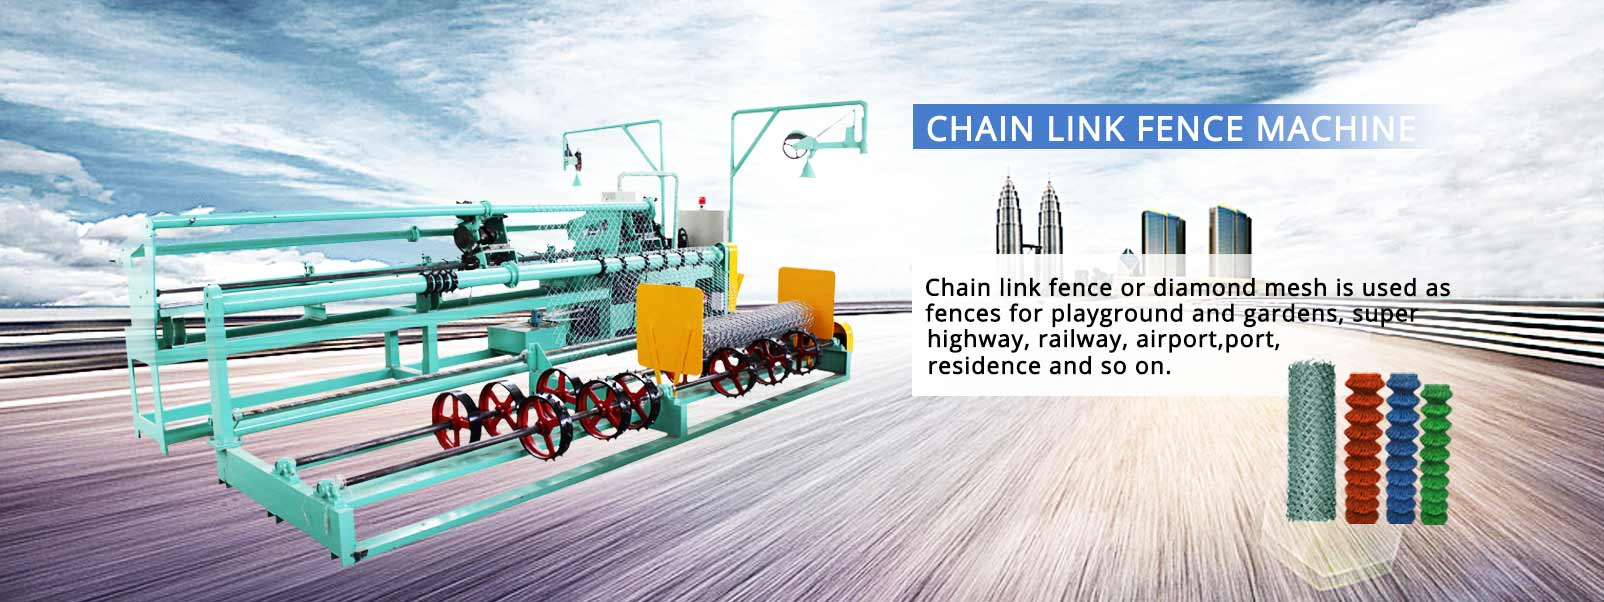 chain-link-fence-machine